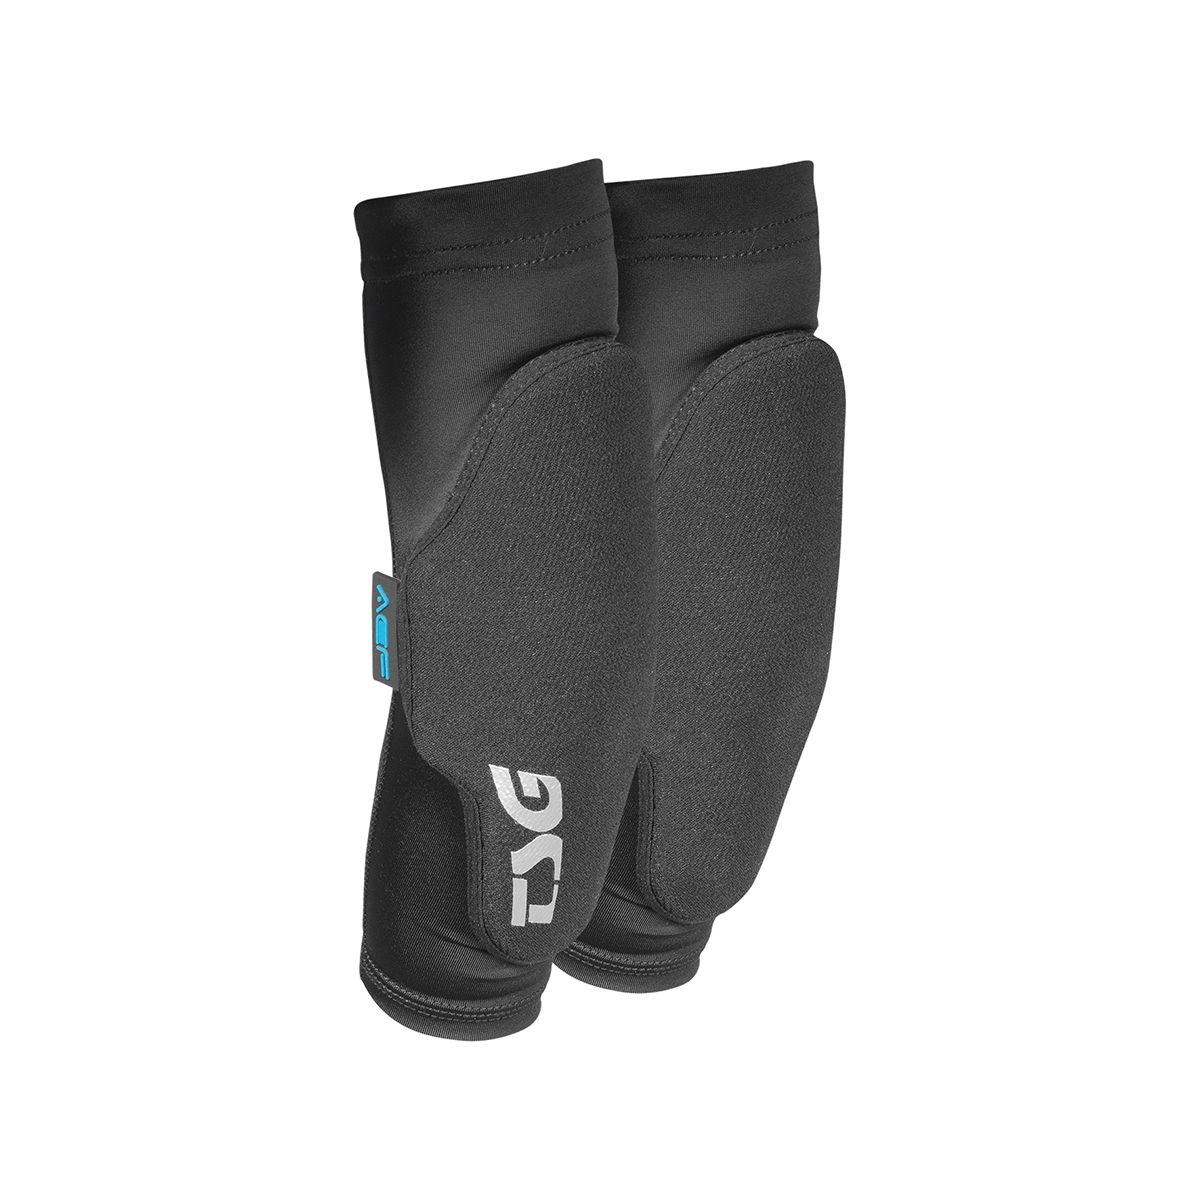 YOUTH ELBOW-SLEEVE DERMIS A Elbow Pads